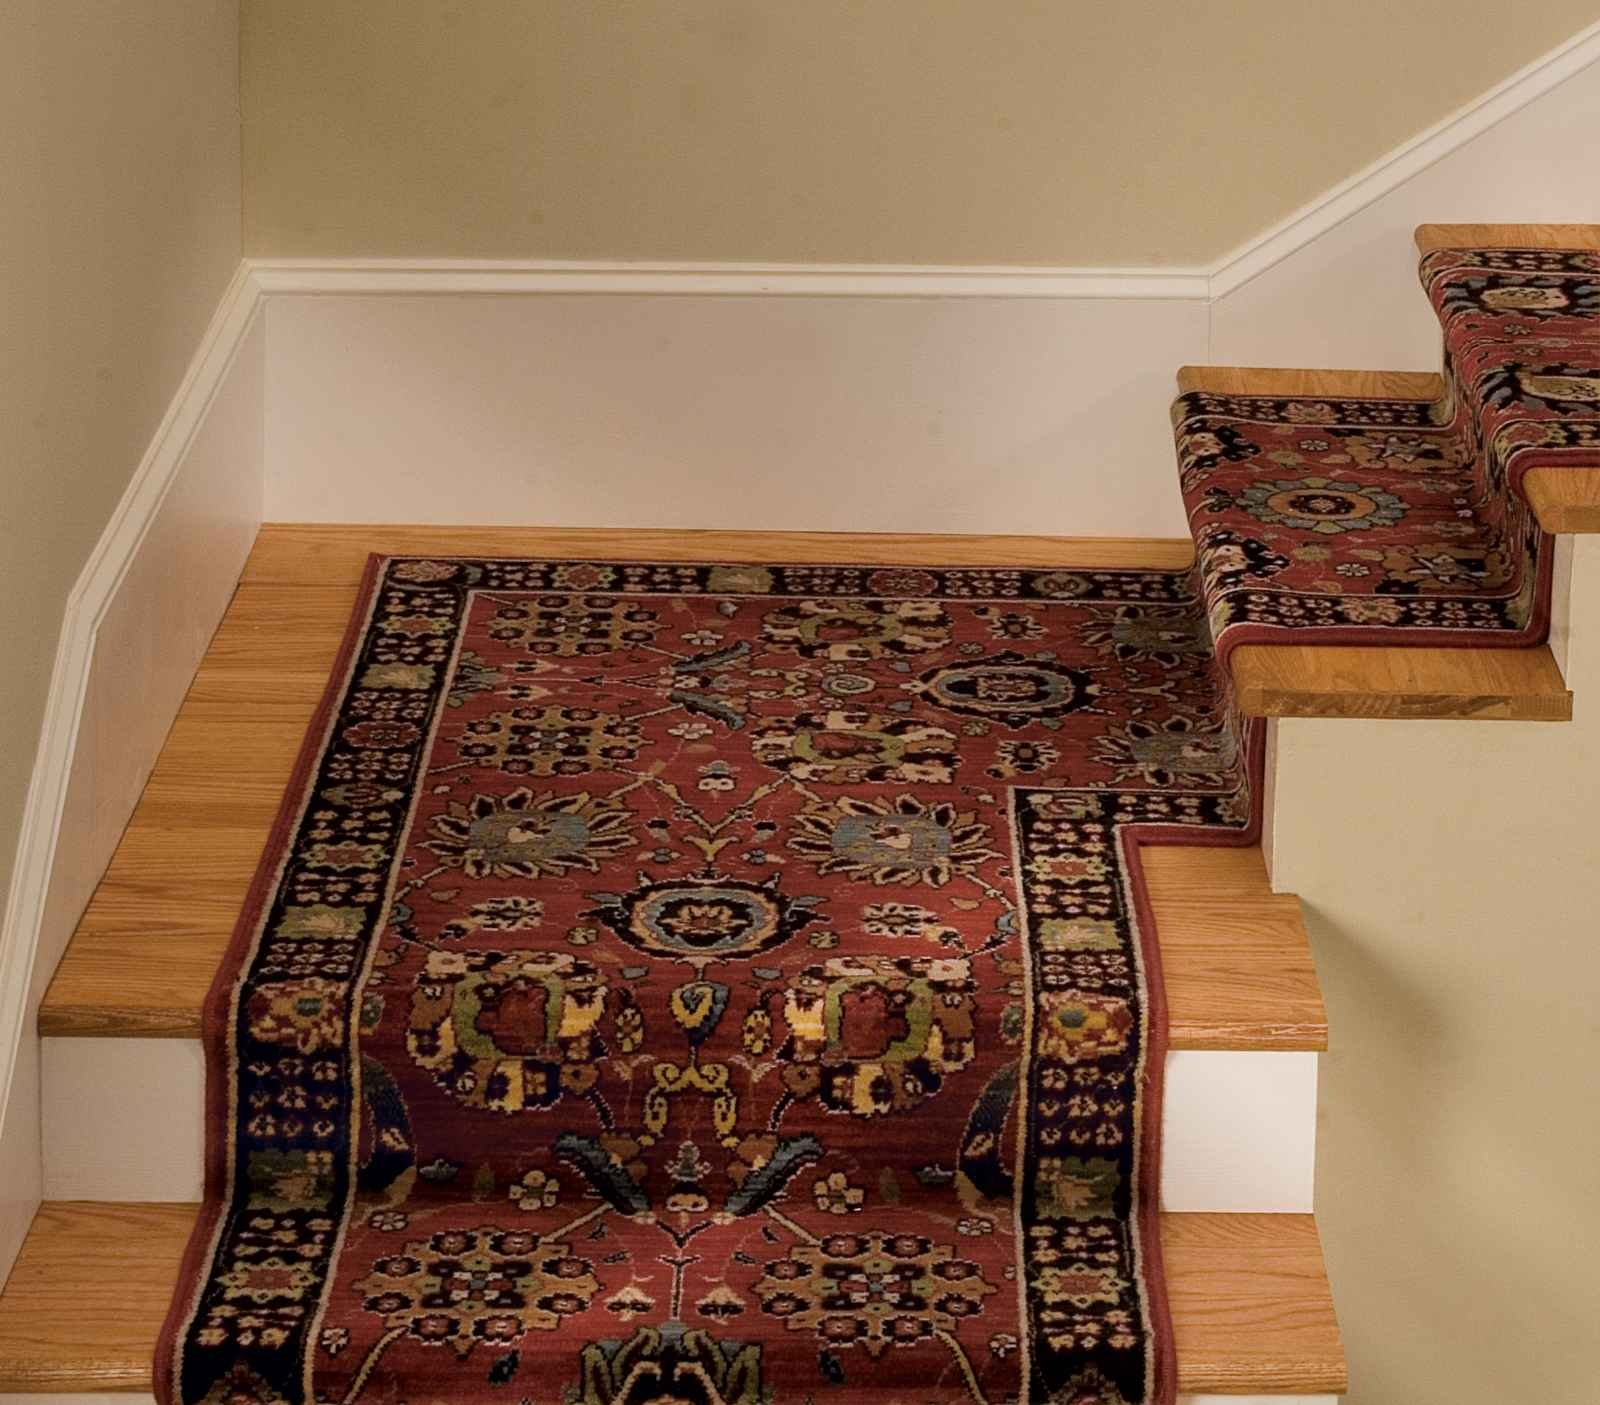 Carpet Stair Runner For Home New Home Pinterest Stair Treads Regarding Country Stair Tread Rugs (Image 6 of 15)